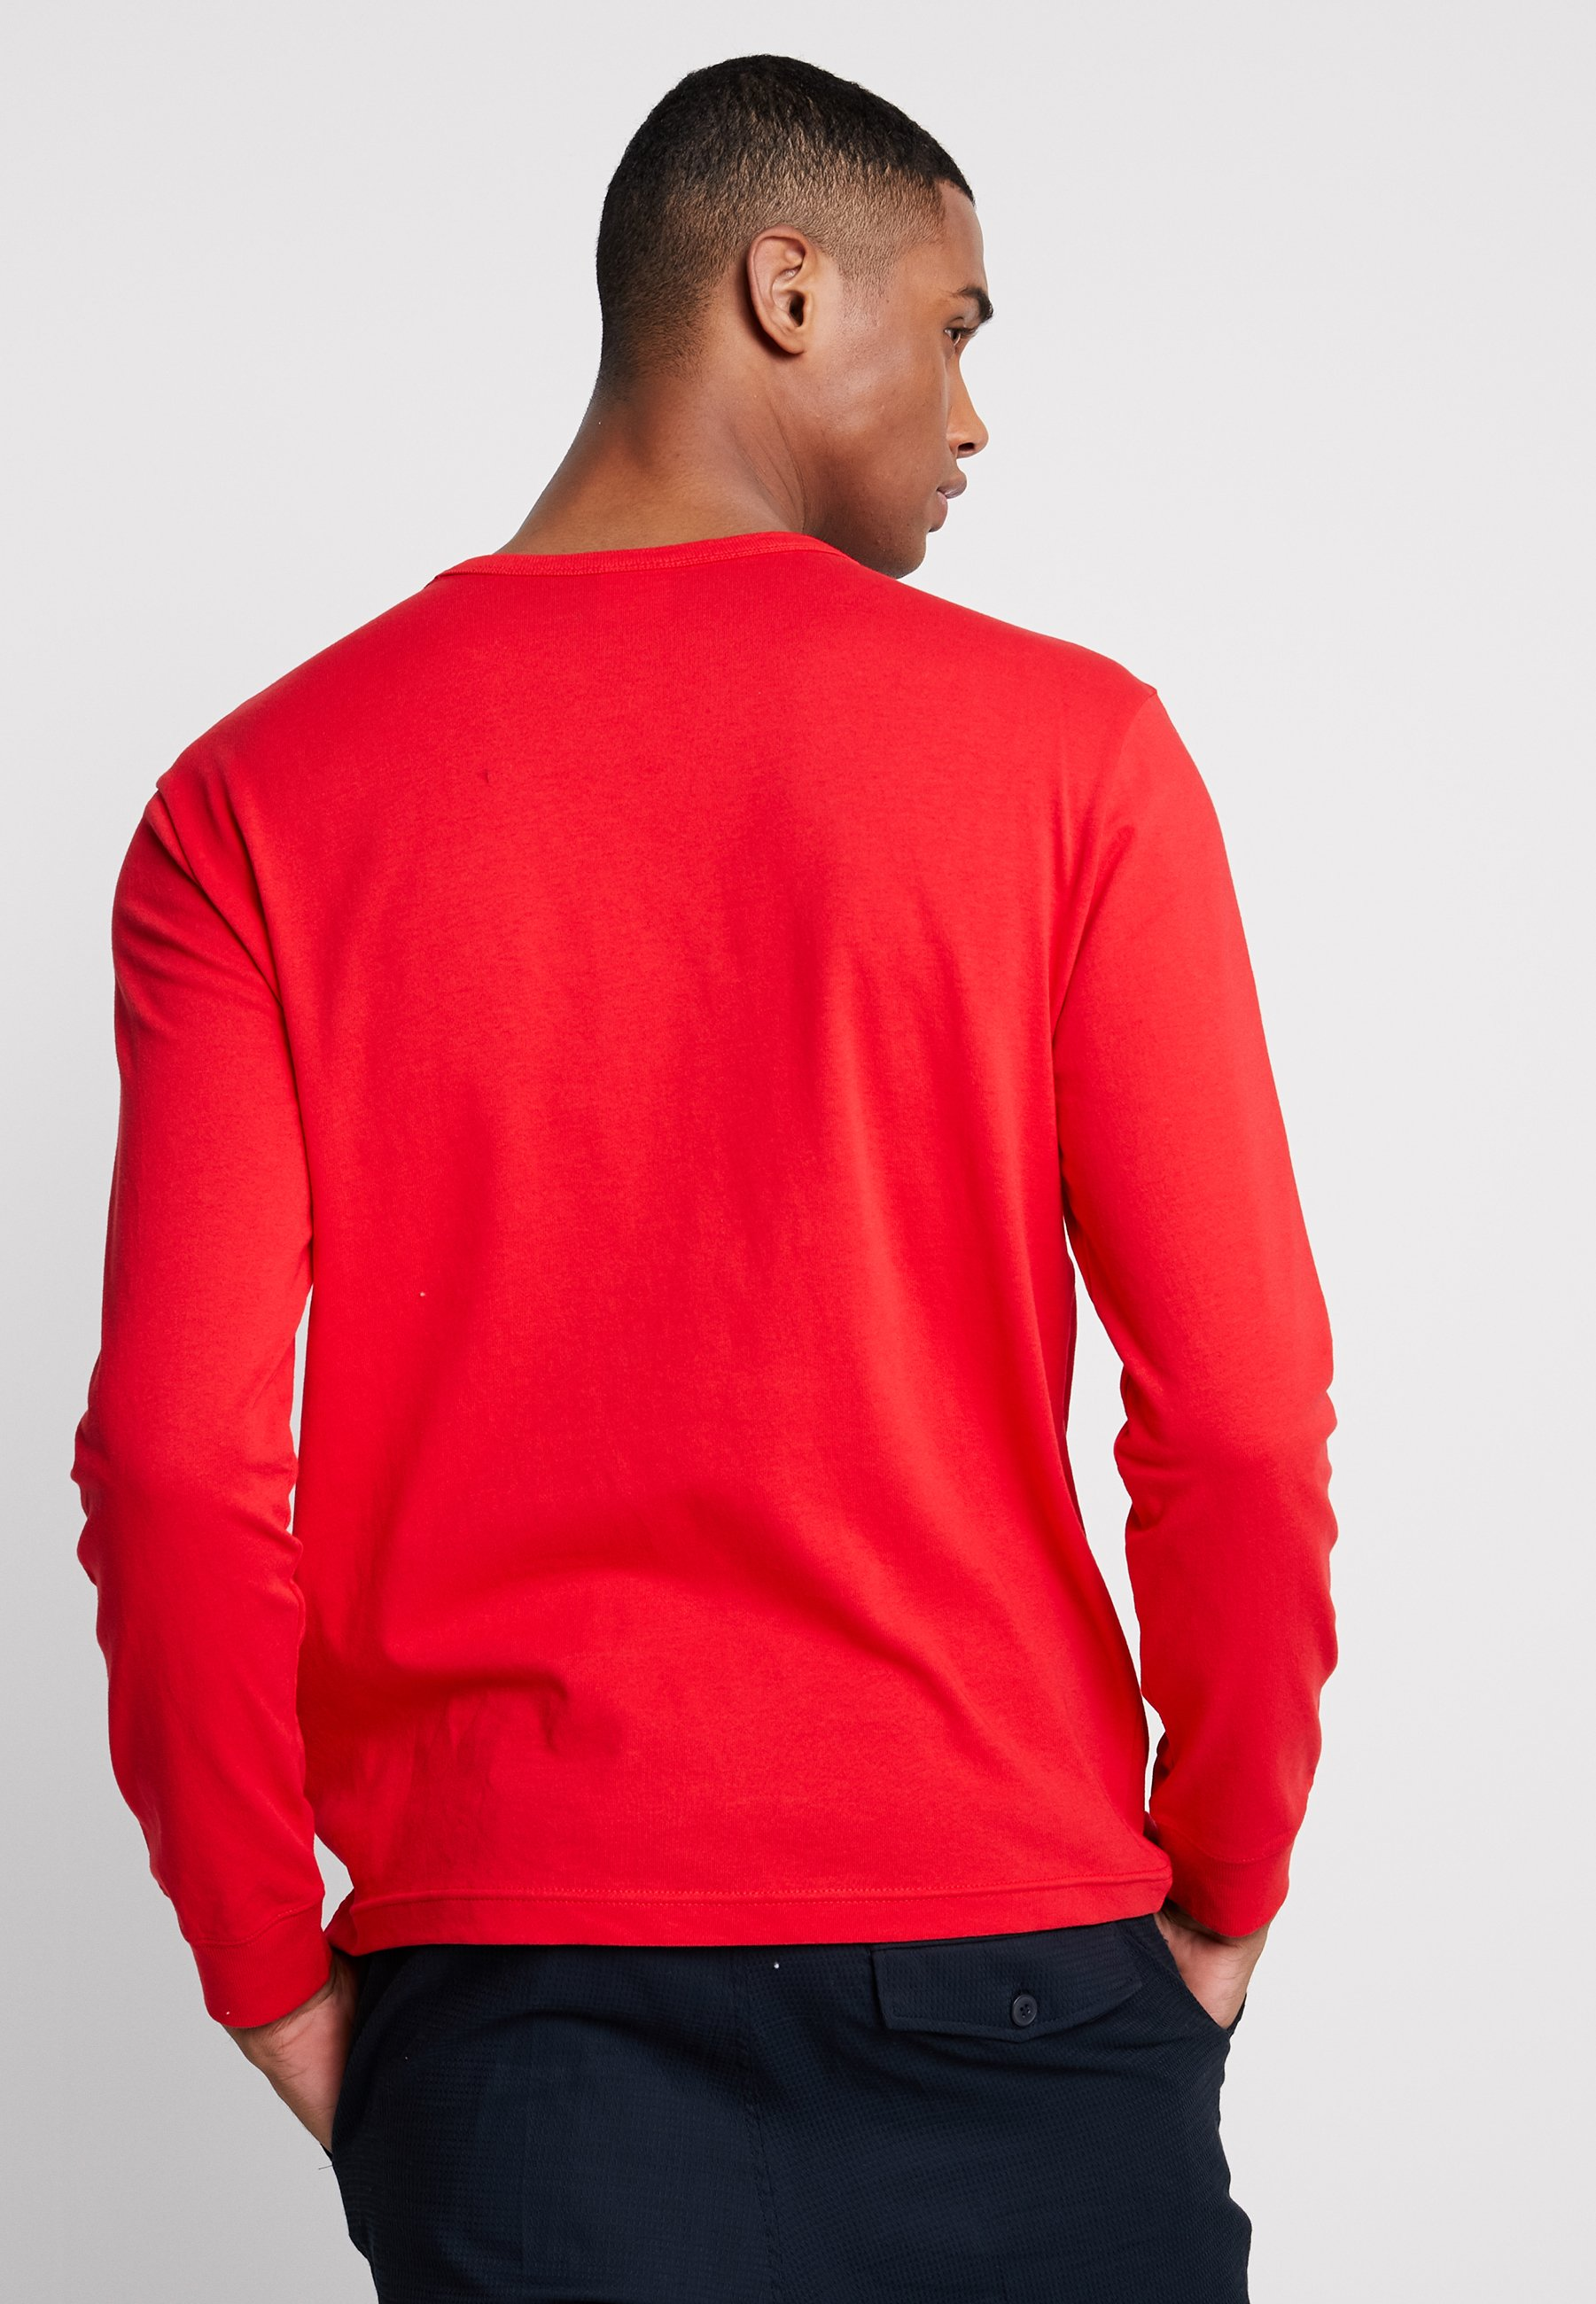 Big Logo Longues Long SleeveT Reverse shirt Red Weave À Champion Manches Crewneck DI2EH9W